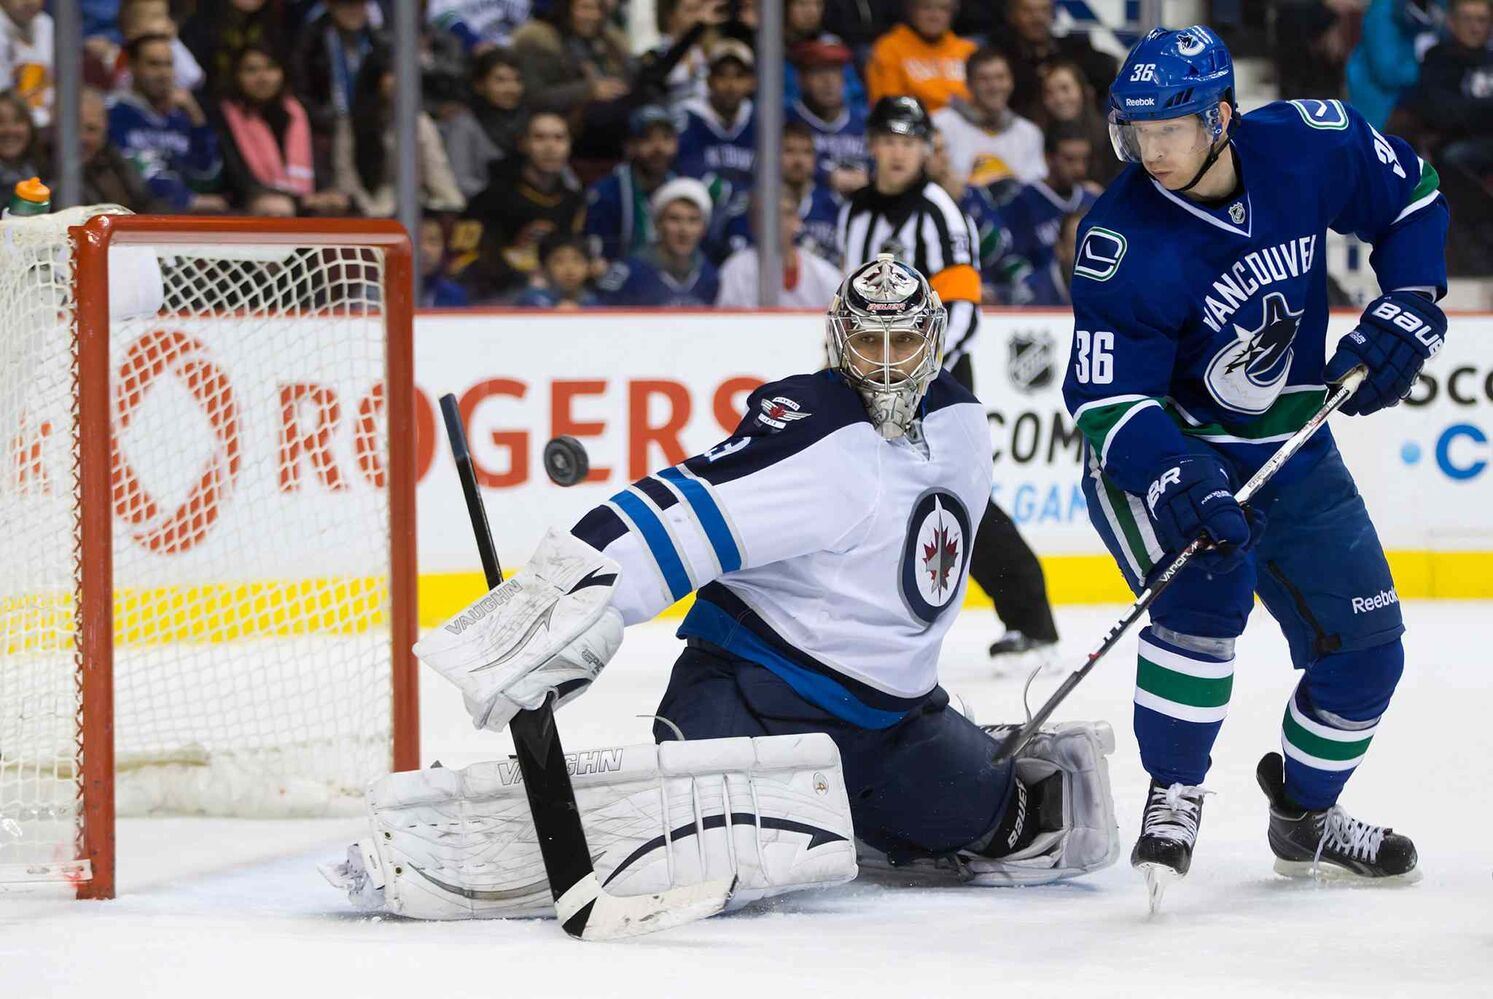 Jannik Hansen (right) of the Vancouver Canucks tips the puck wide of Winnipeg Jets goalie Ondrej Pavelec.